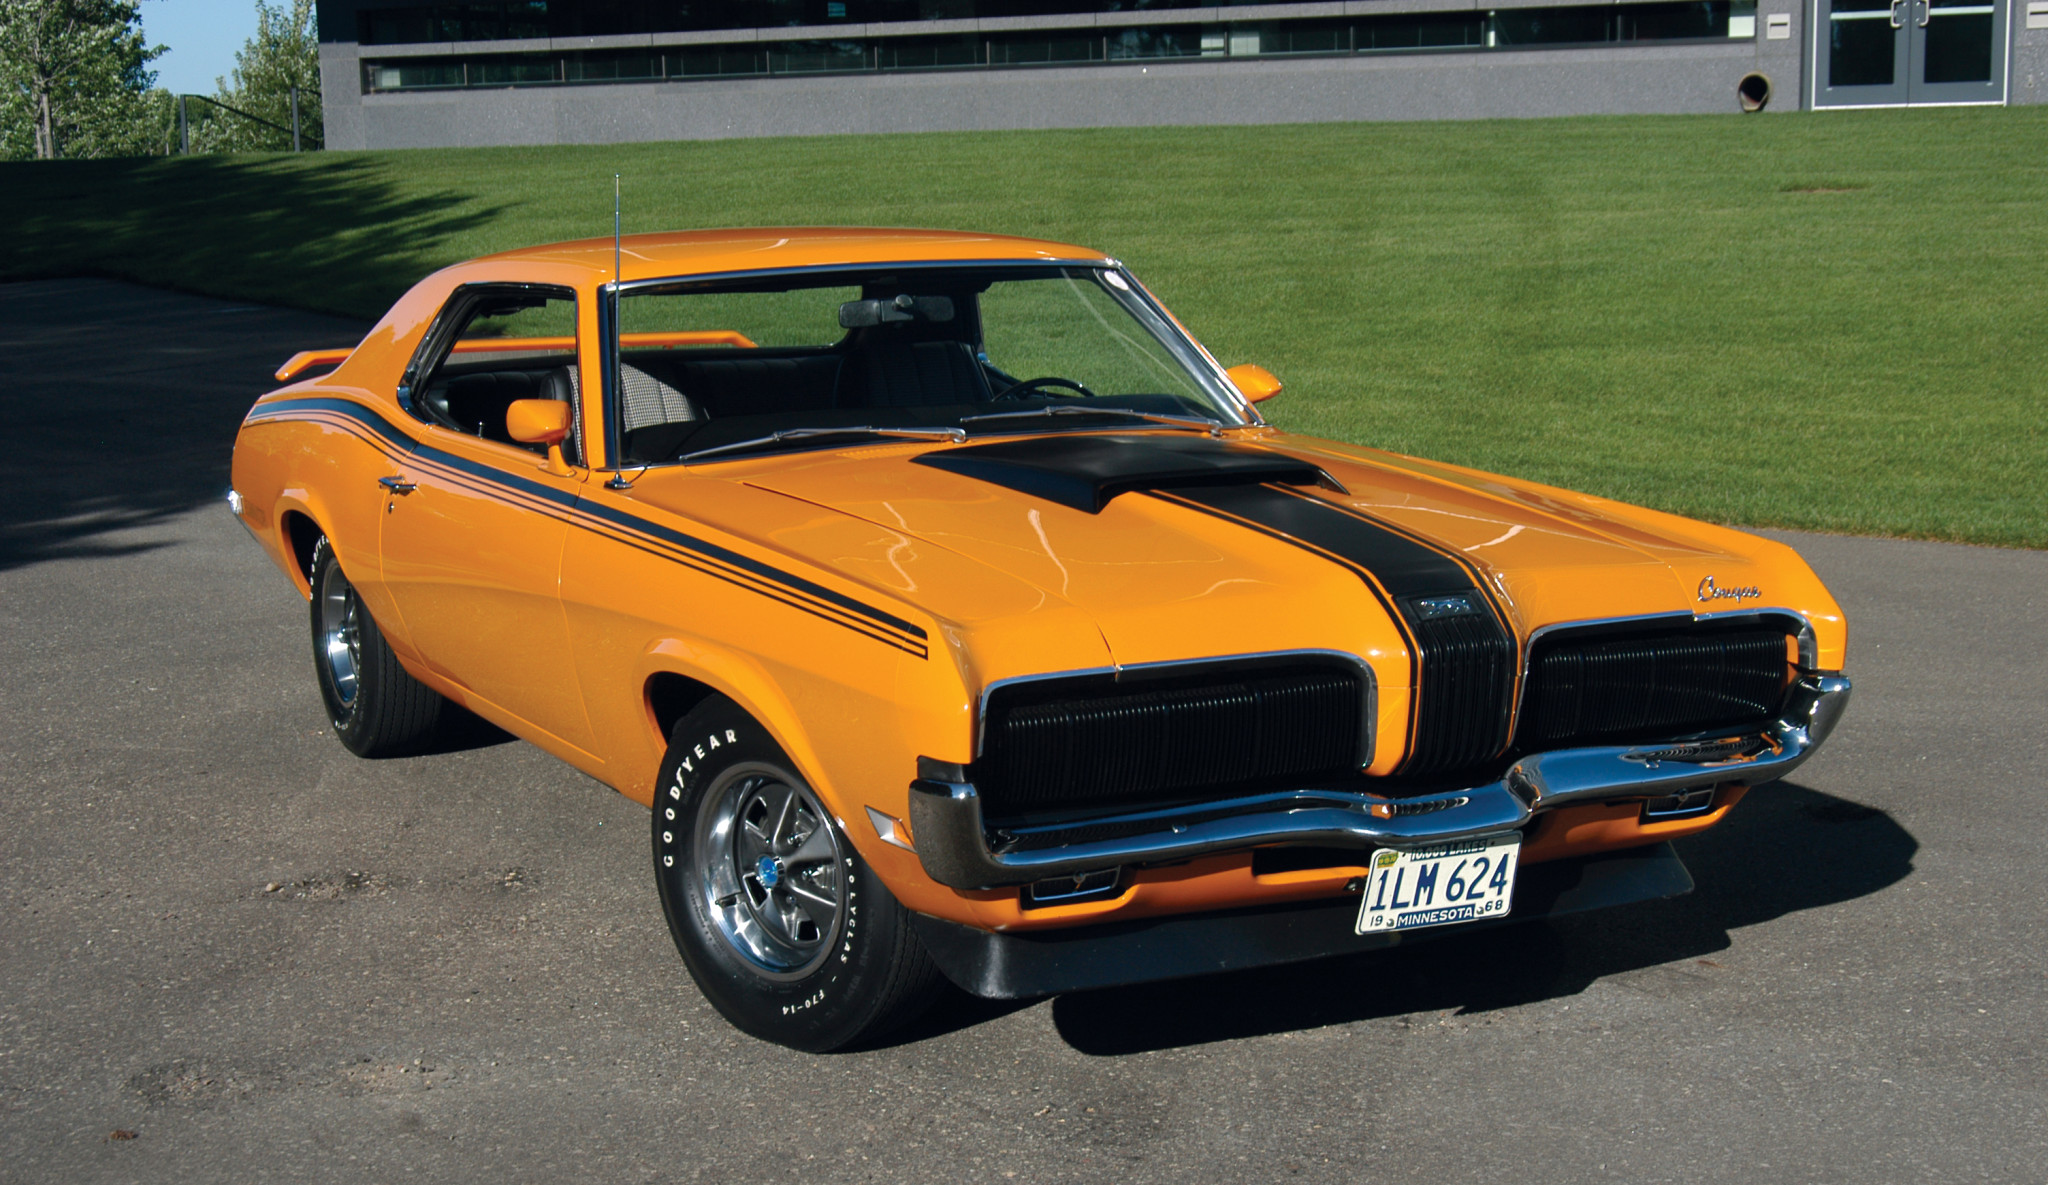 Ford Ranchero 1975 images #1204